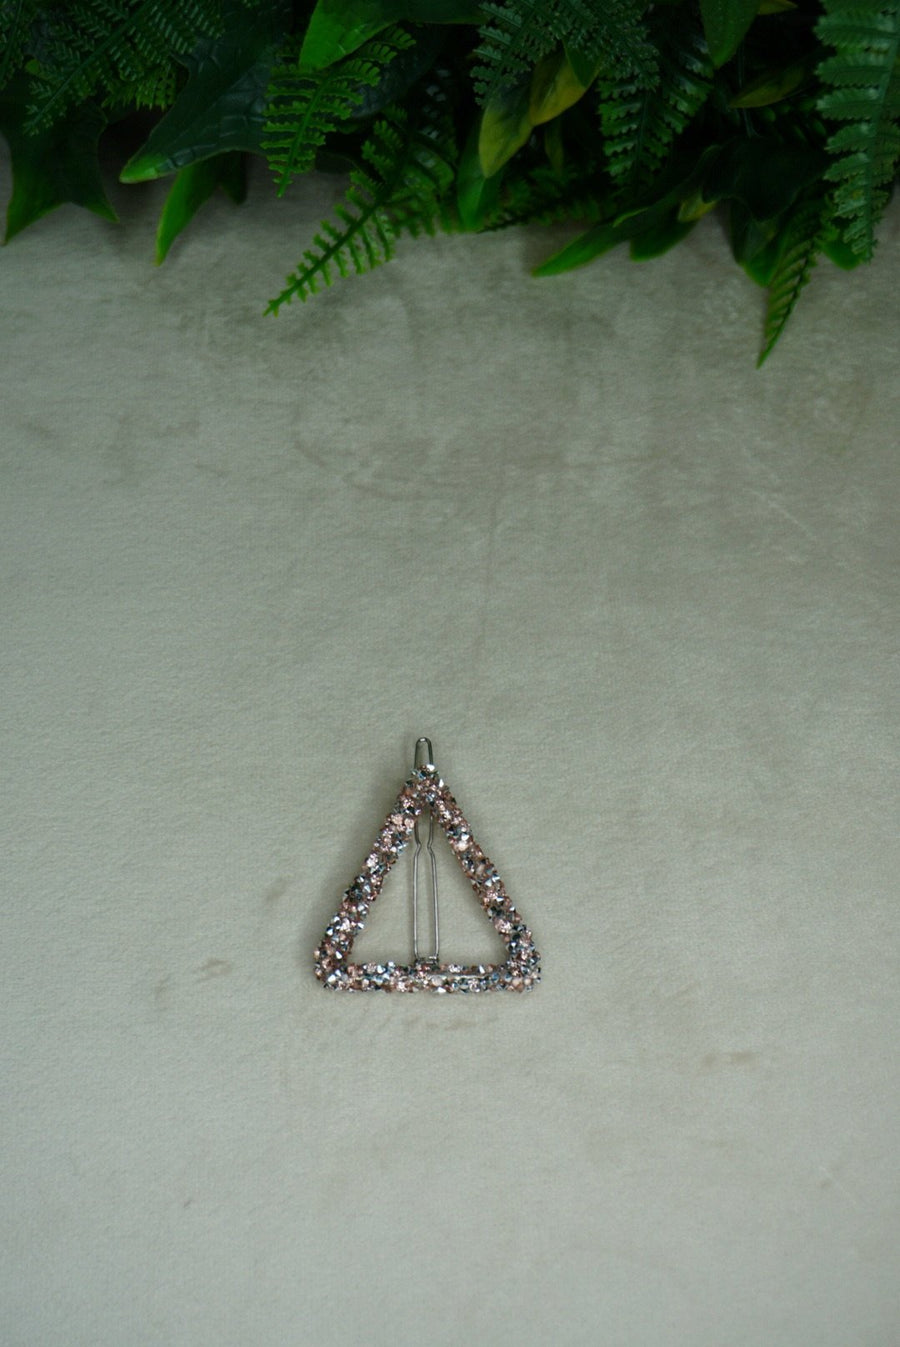 Pyramid Pink Beaded Hair Clip - PhivestarhairboutiquePyramid Pink Beaded Hair Clip